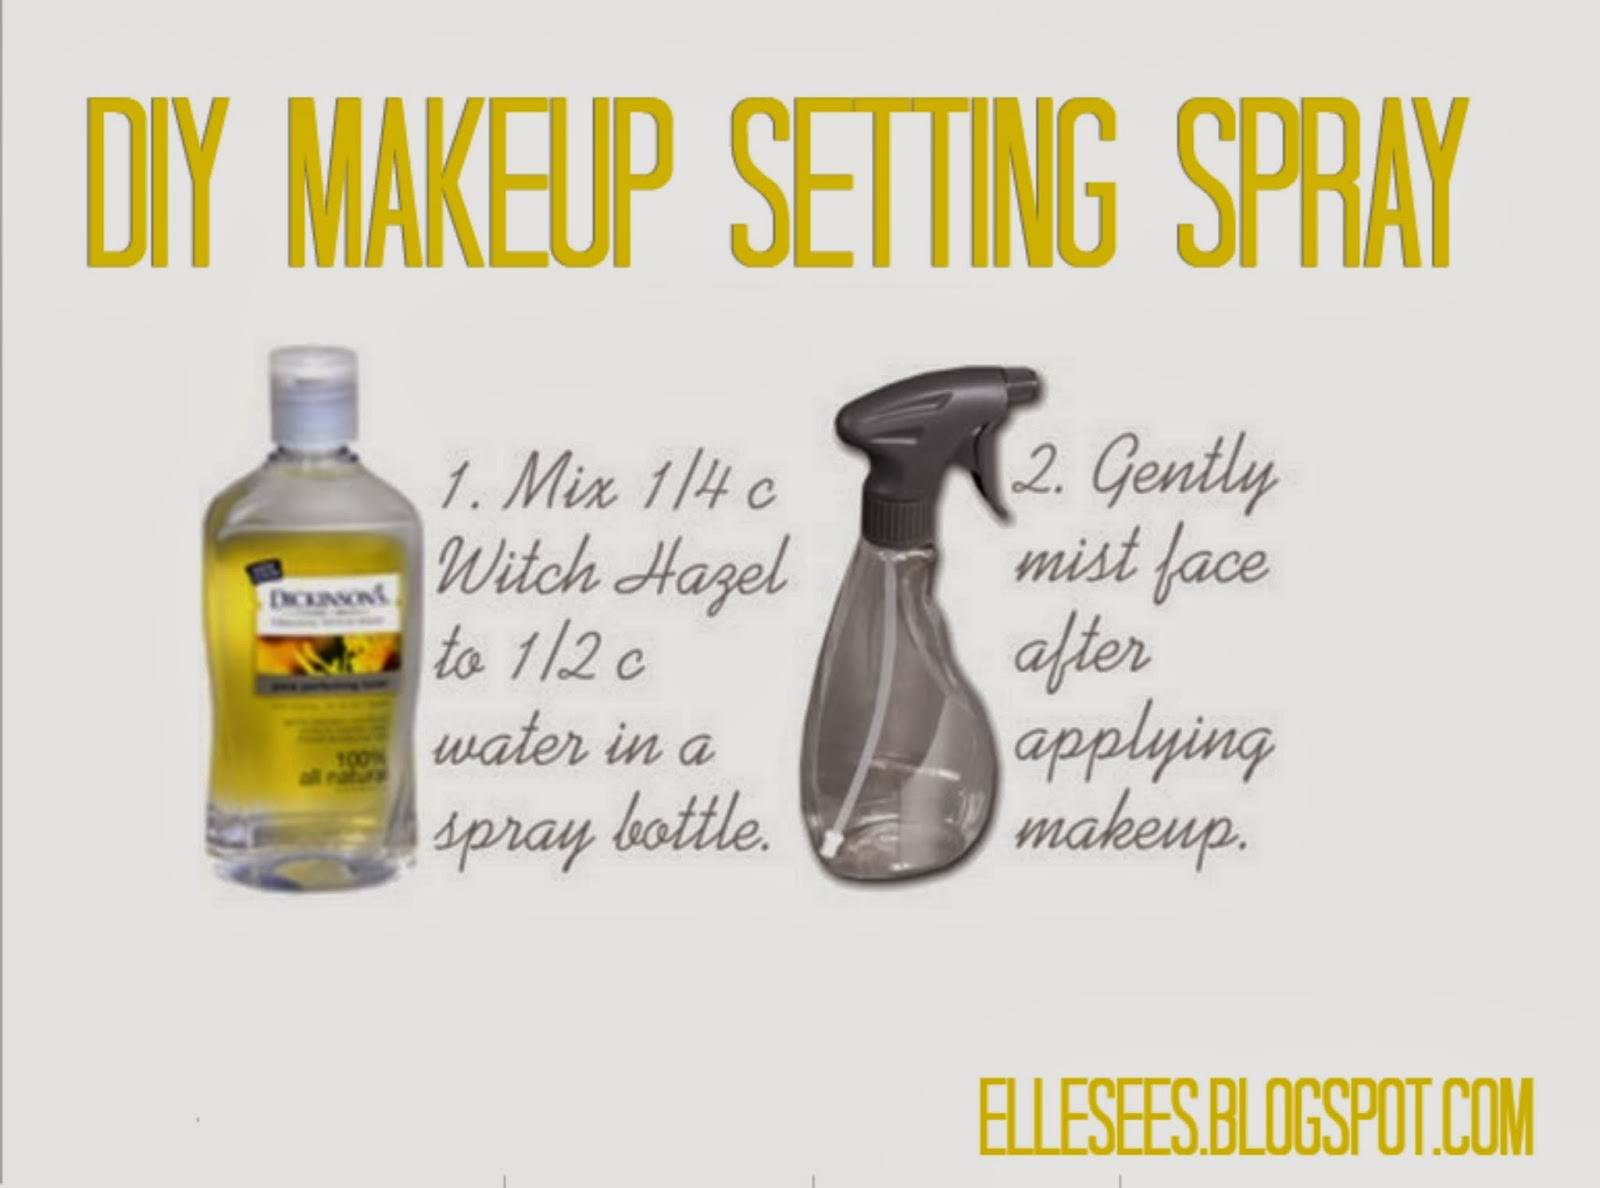 diy setting spray for skin without glycerin sees in atlanta diy makeup setting spray